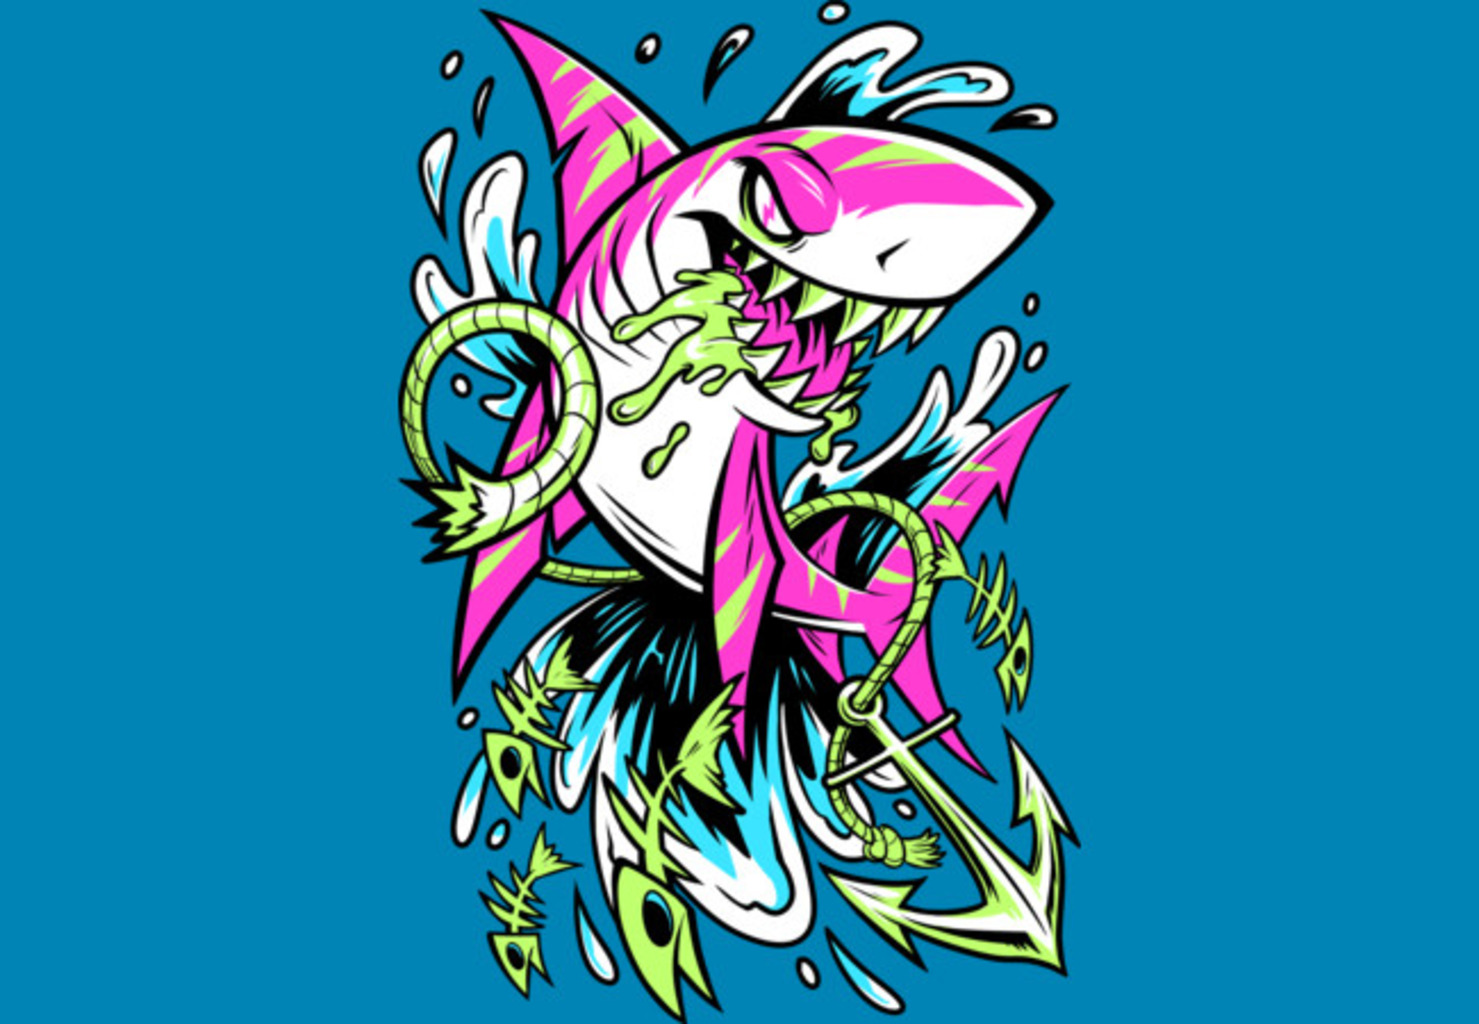 Design by Humans: Shark Splash